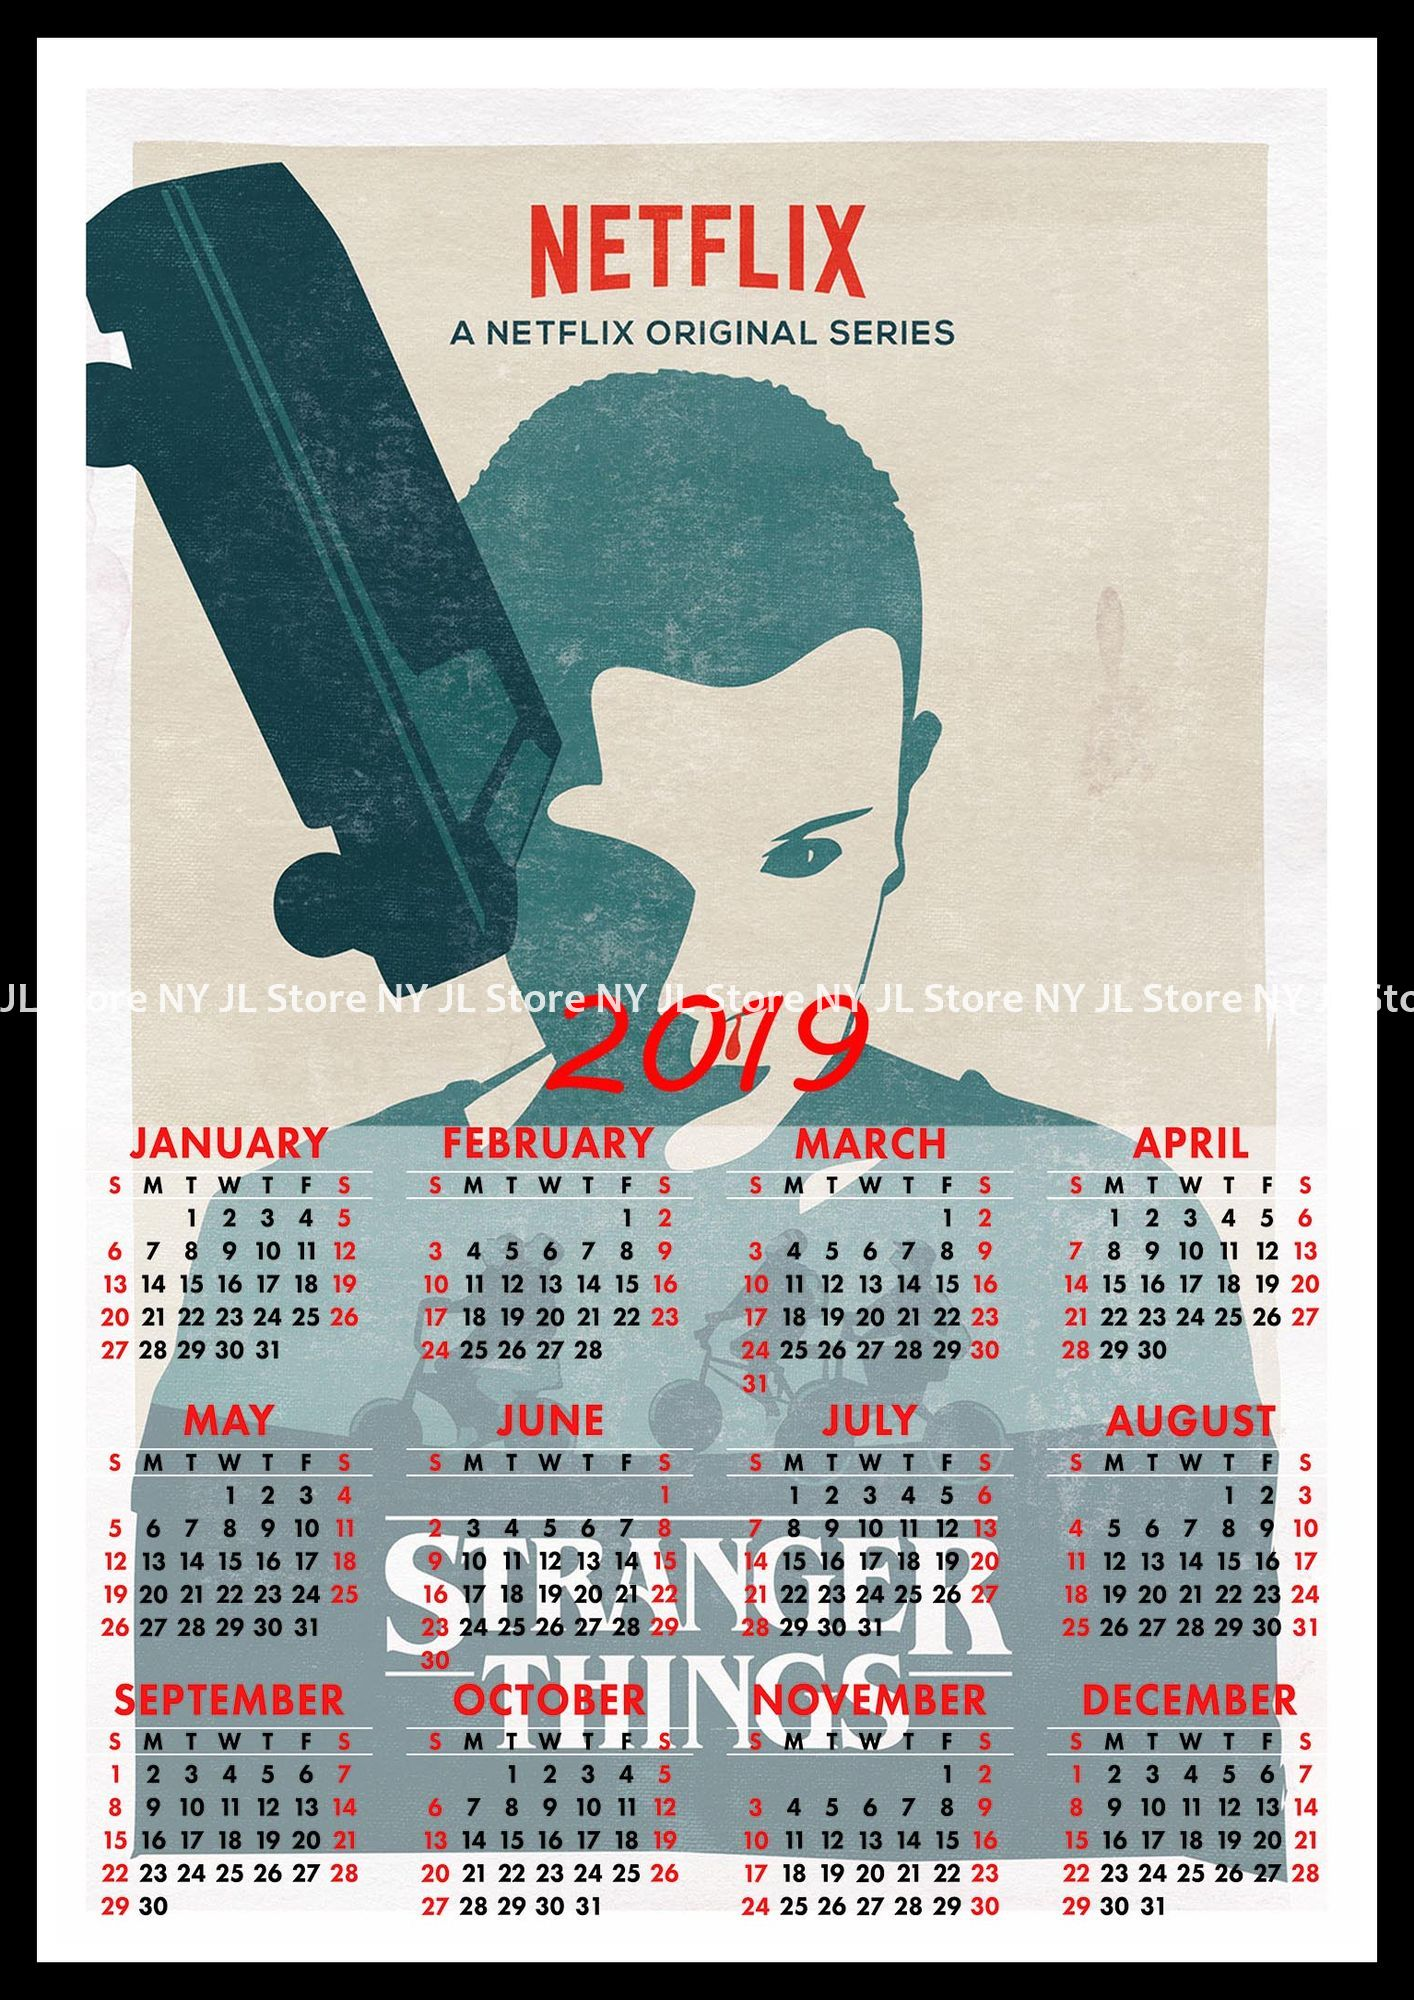 Calendario Stranger Things.Us 2 1 30 Off Stranger Things Collection Series A 2019 Calendar Home Furnishing Decorative White Coated Paper Poster Wall Sticker Home Decora In